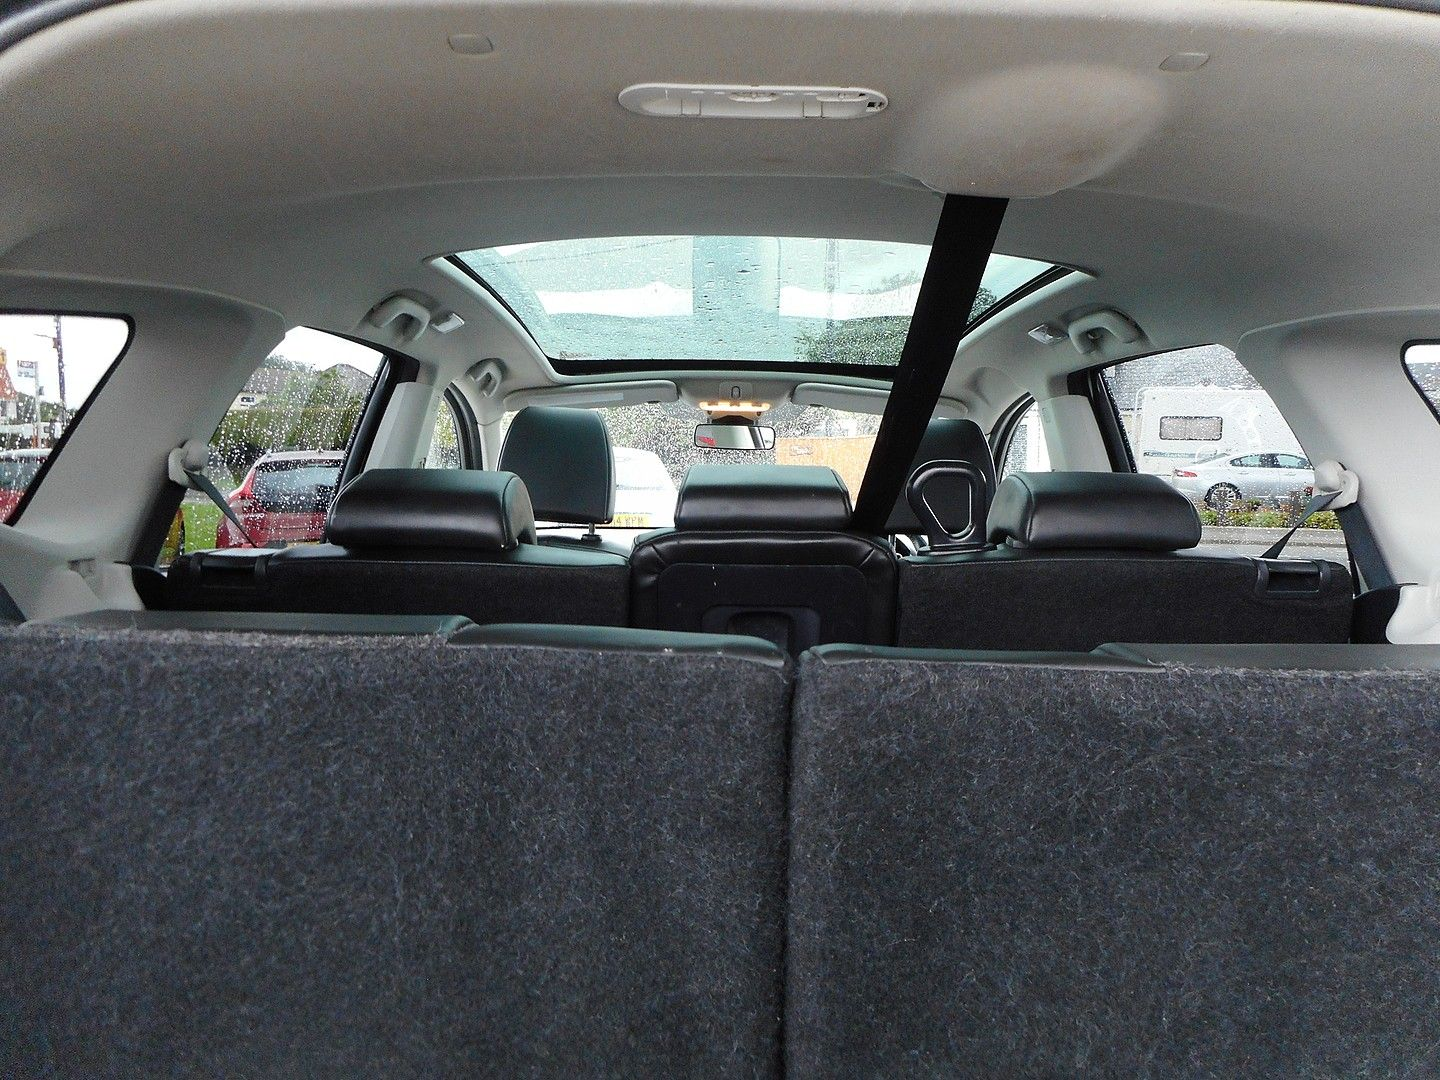 NISSAN QASHQAI 360 1.5 dCi 7 SEATER (2013) - Picture 14